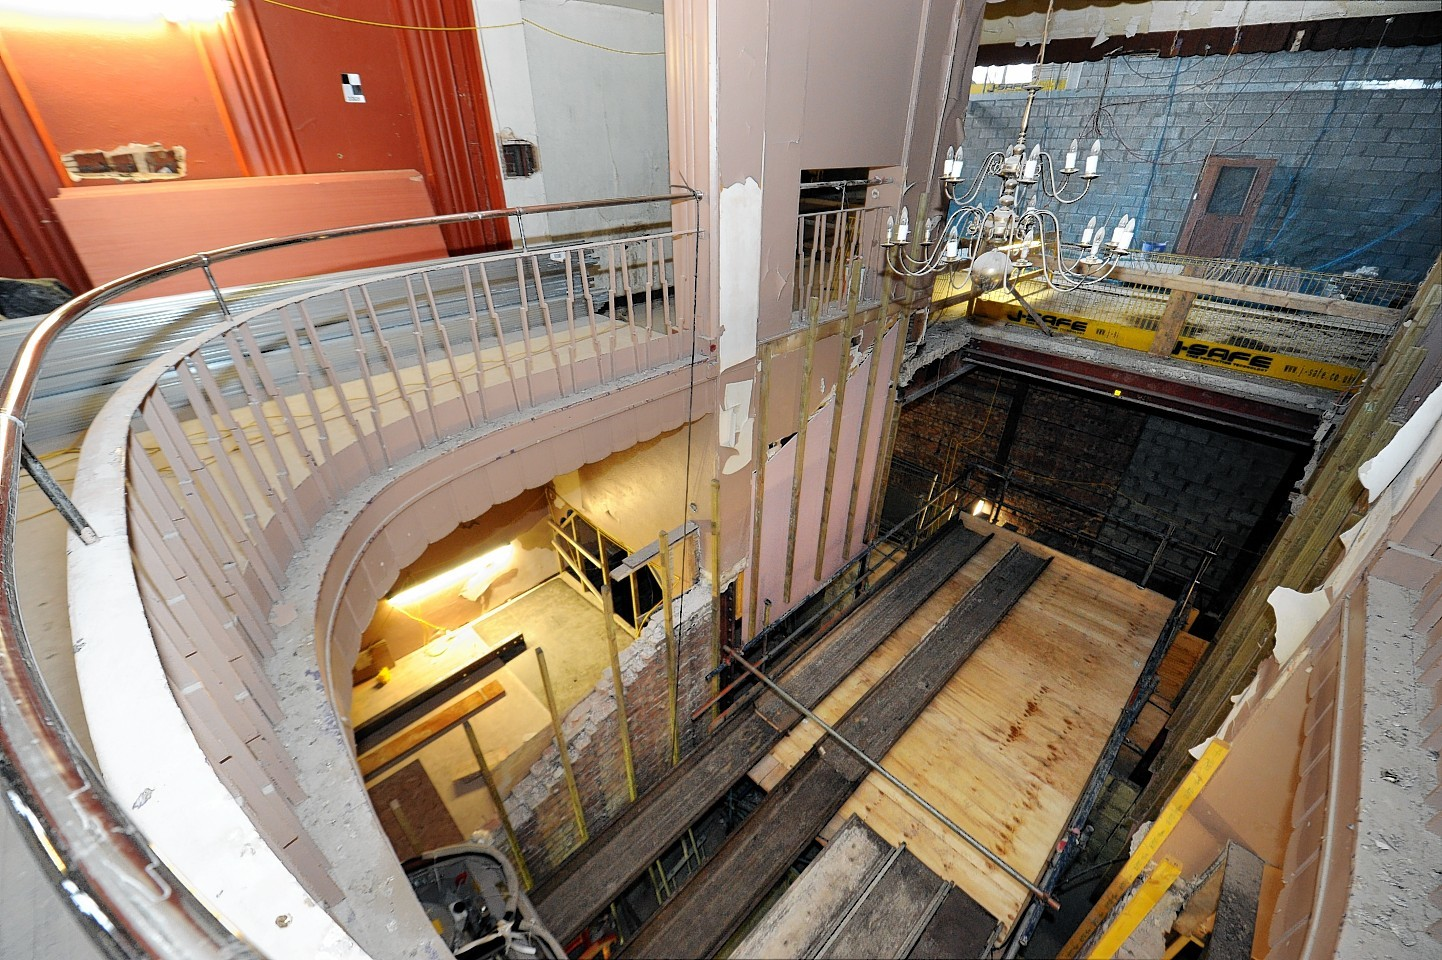 Pictures show work progressing on the Capitol